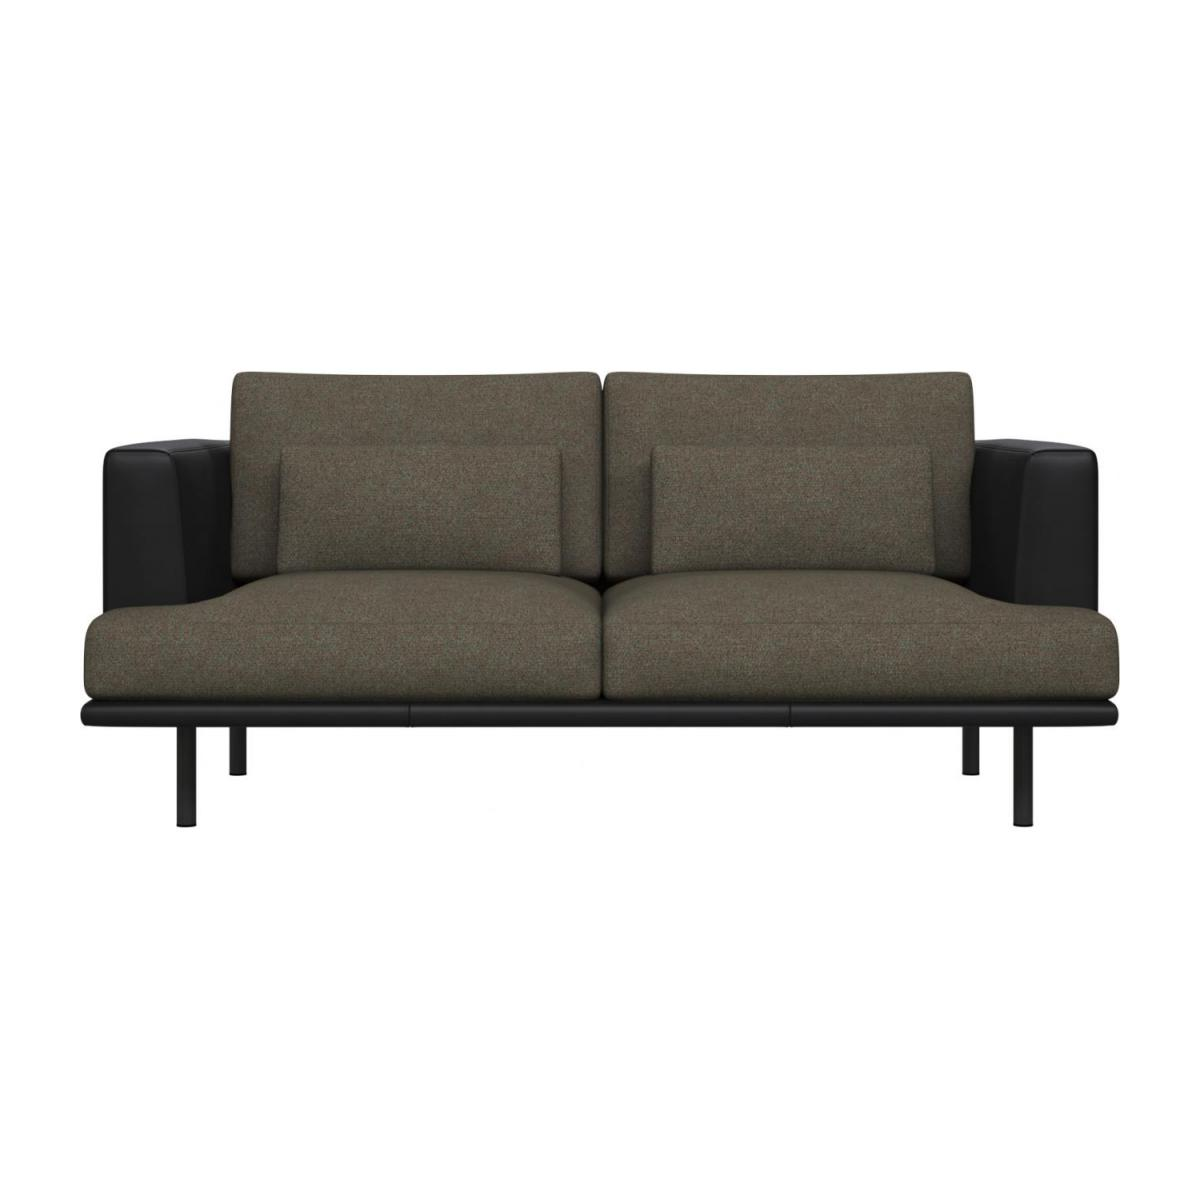 2 seater sofa in Lecce fabric, slade grey with base and armrests in black leather n°2